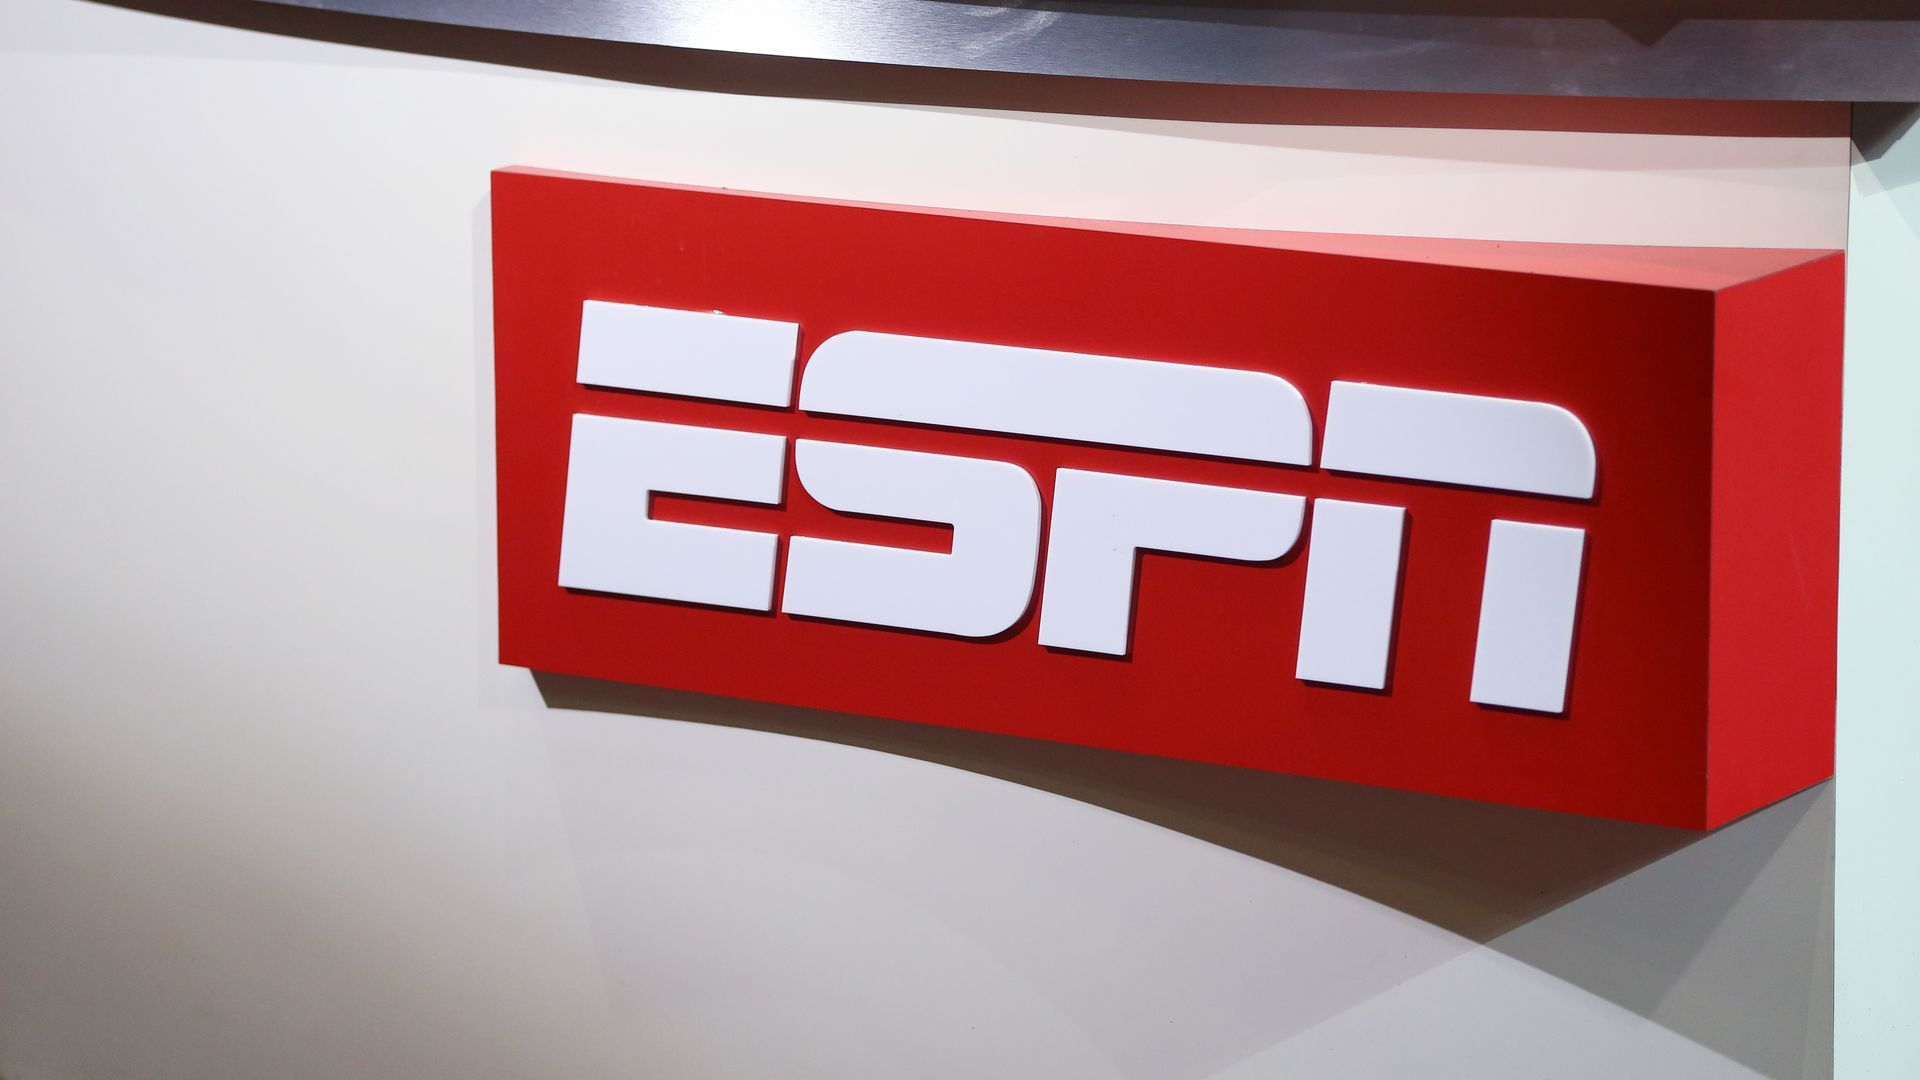 espn will not air the national anthem before monday night football